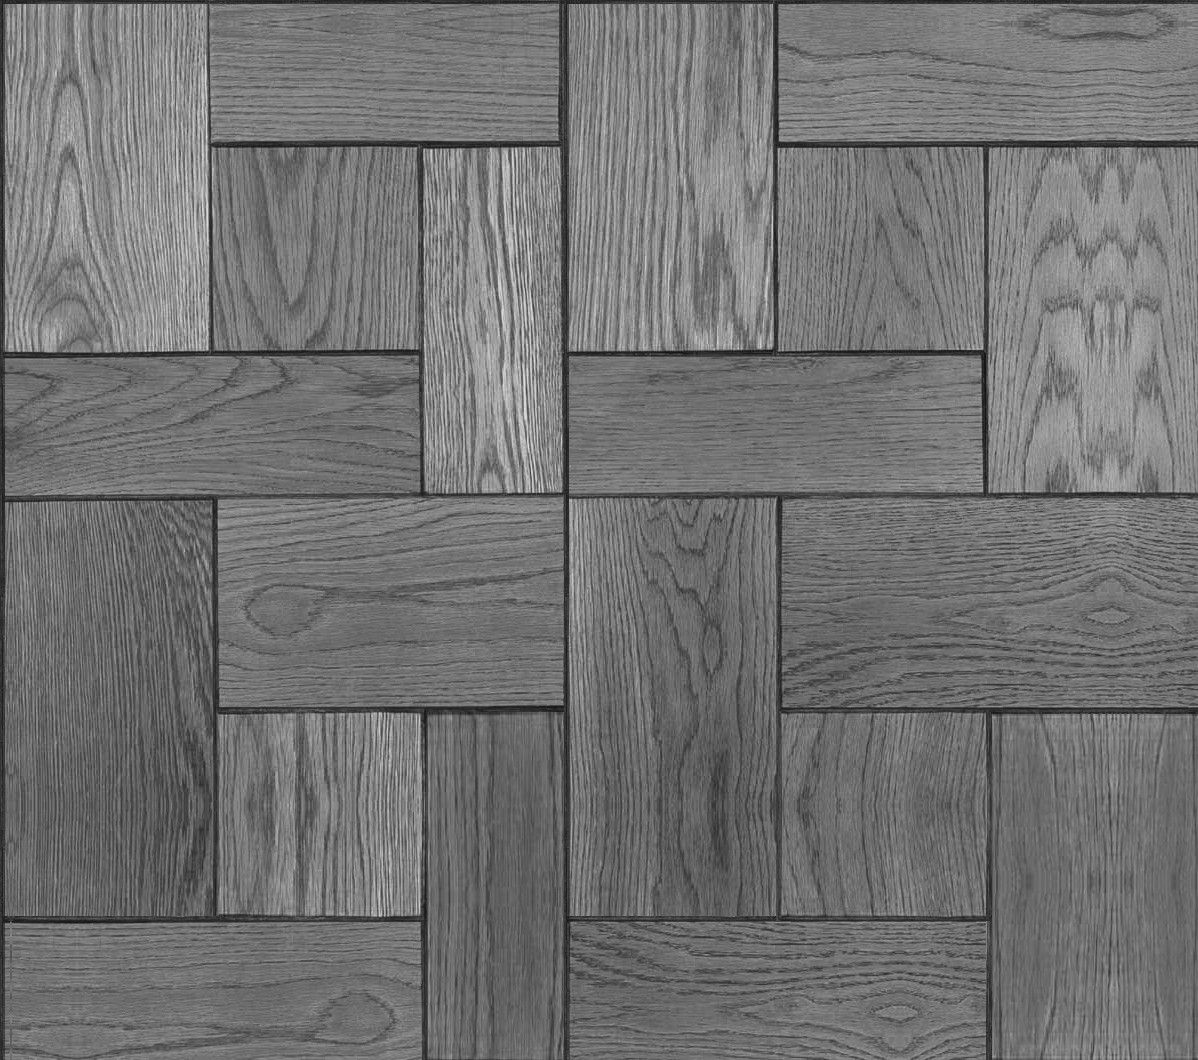 Black Floor Wood Texture 1198x1060 Px Material Texture Pattern Pinterest Wood Floor